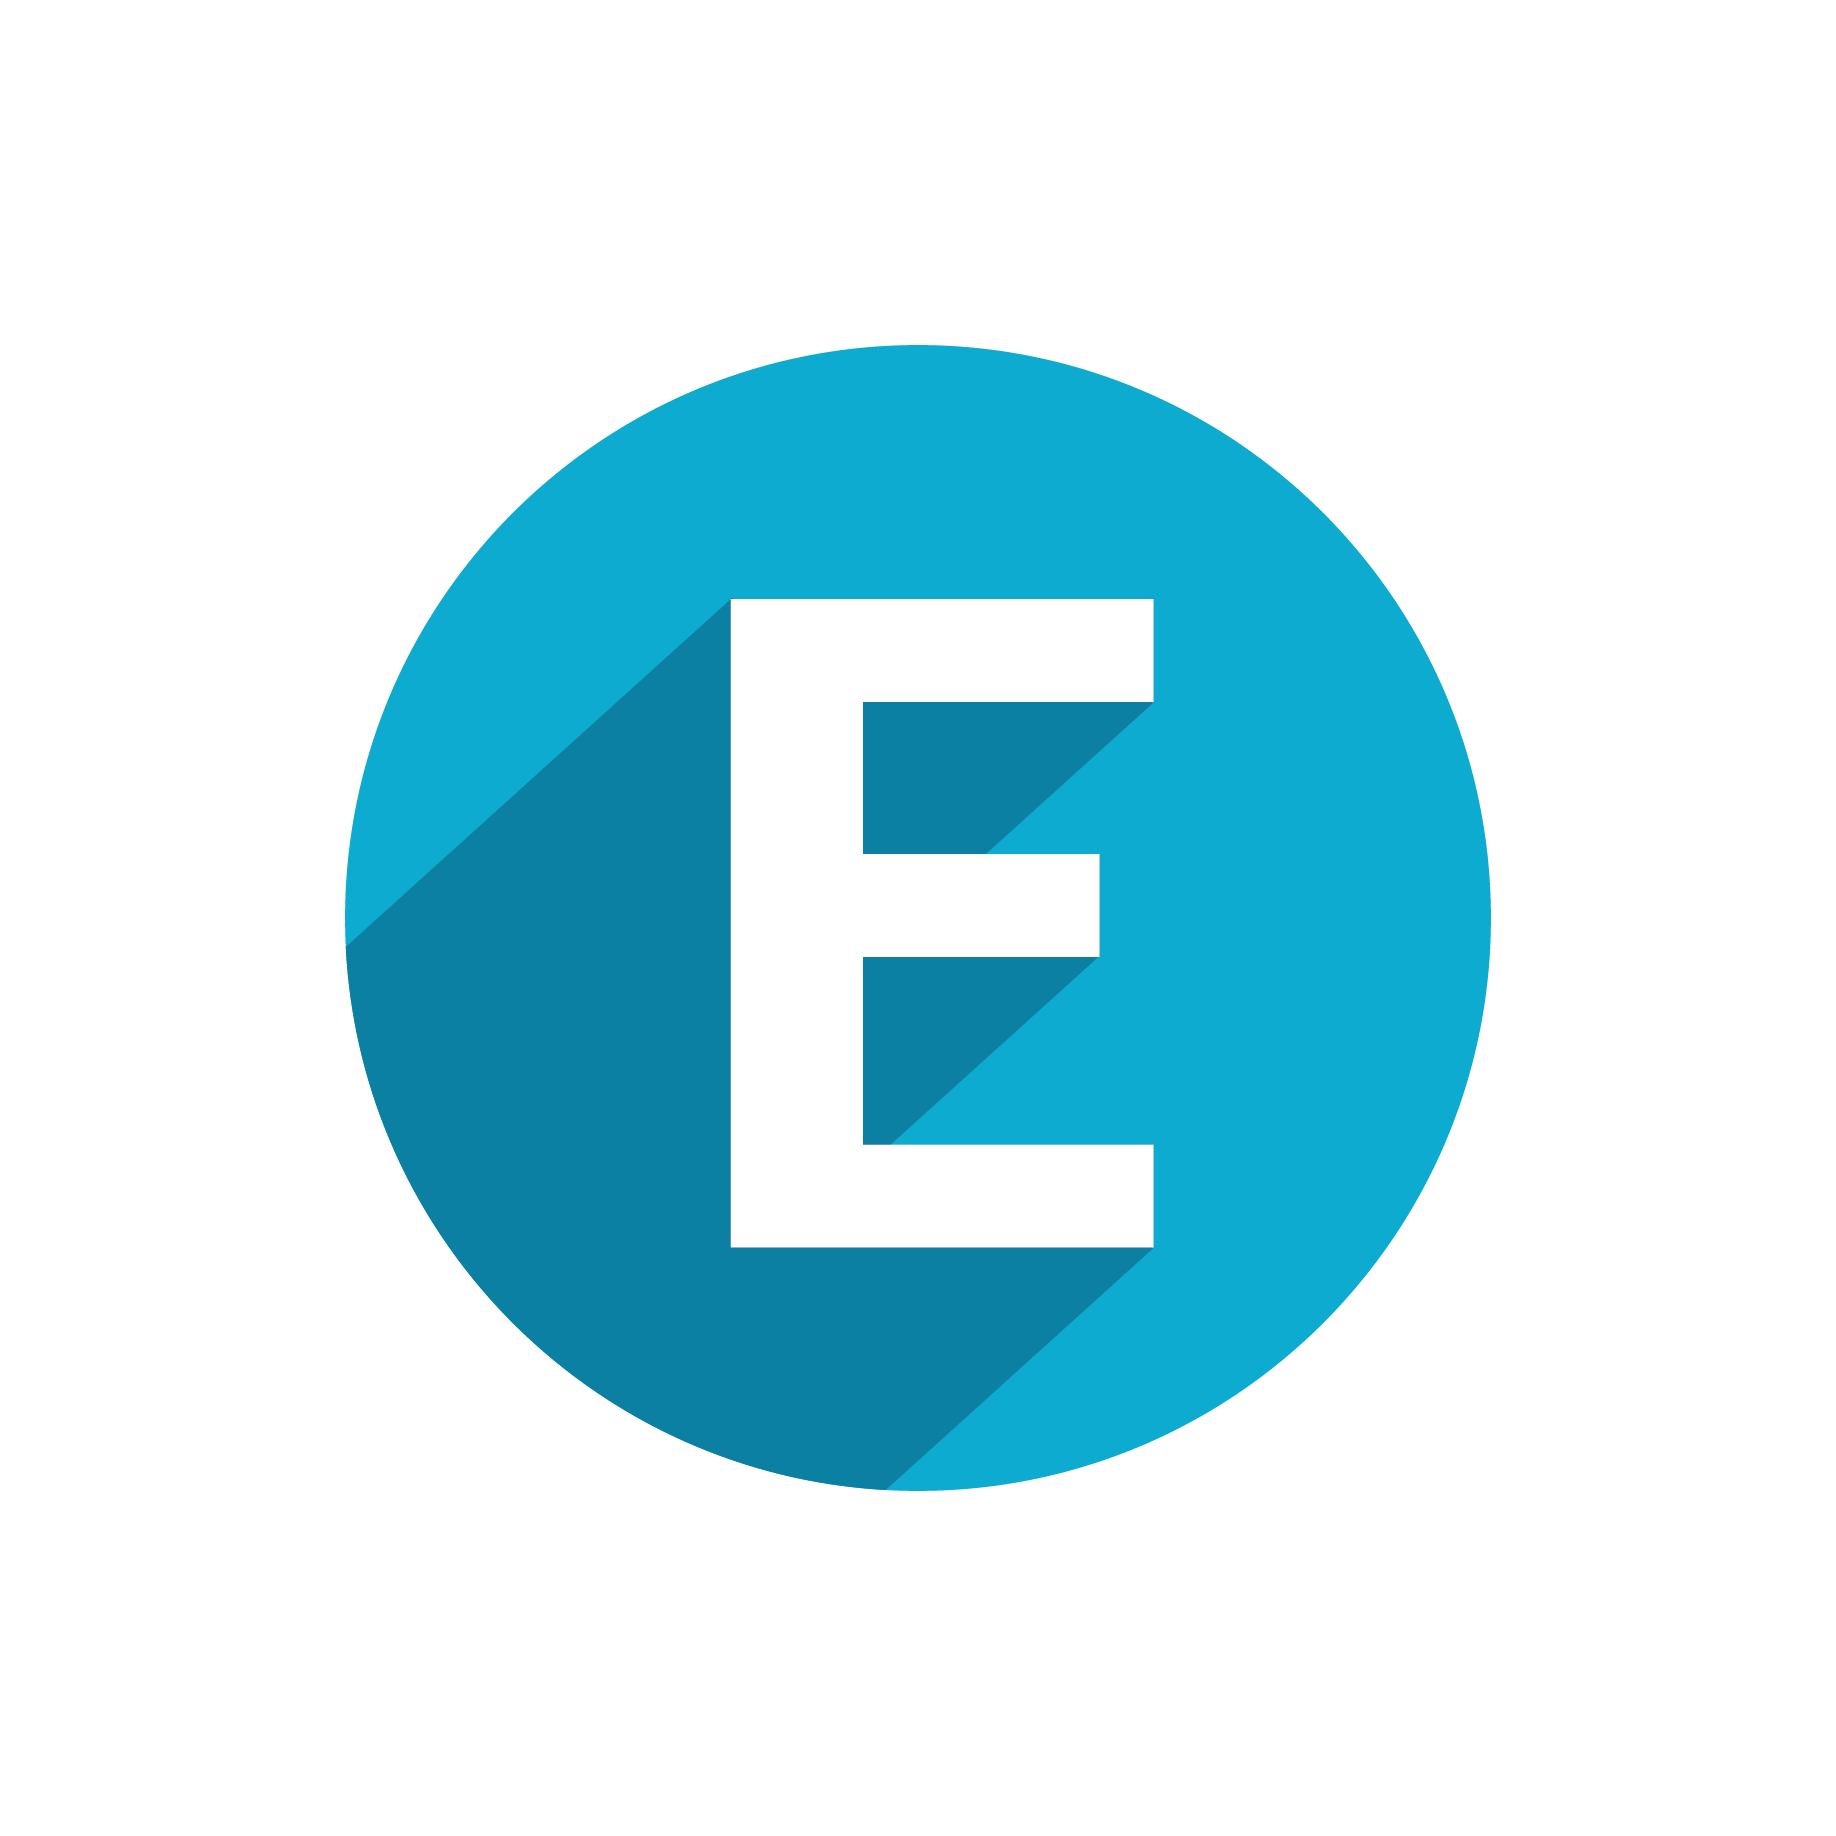 icon_letter_e_3x.png